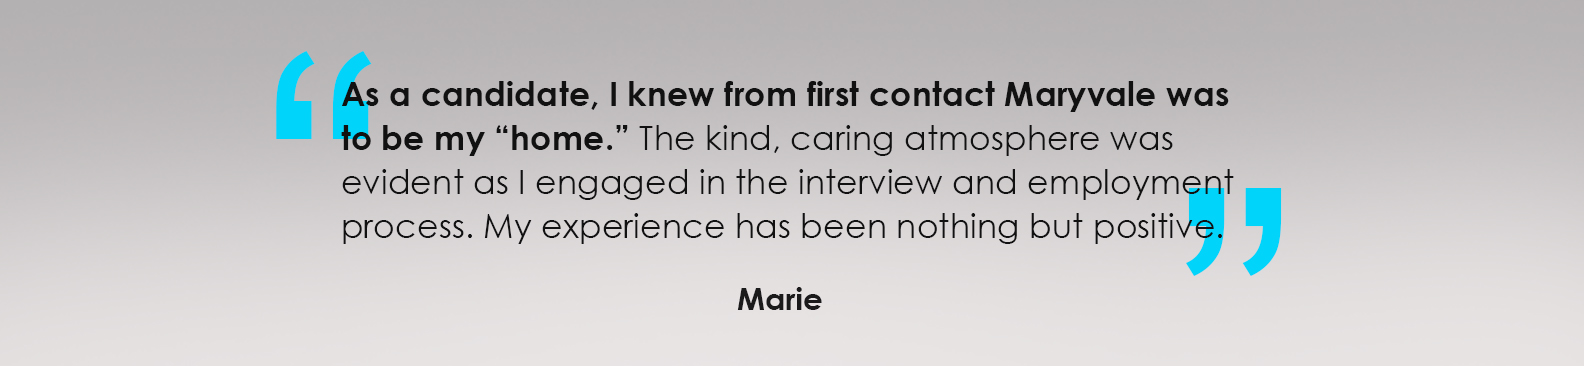 marie_quote_1584x366